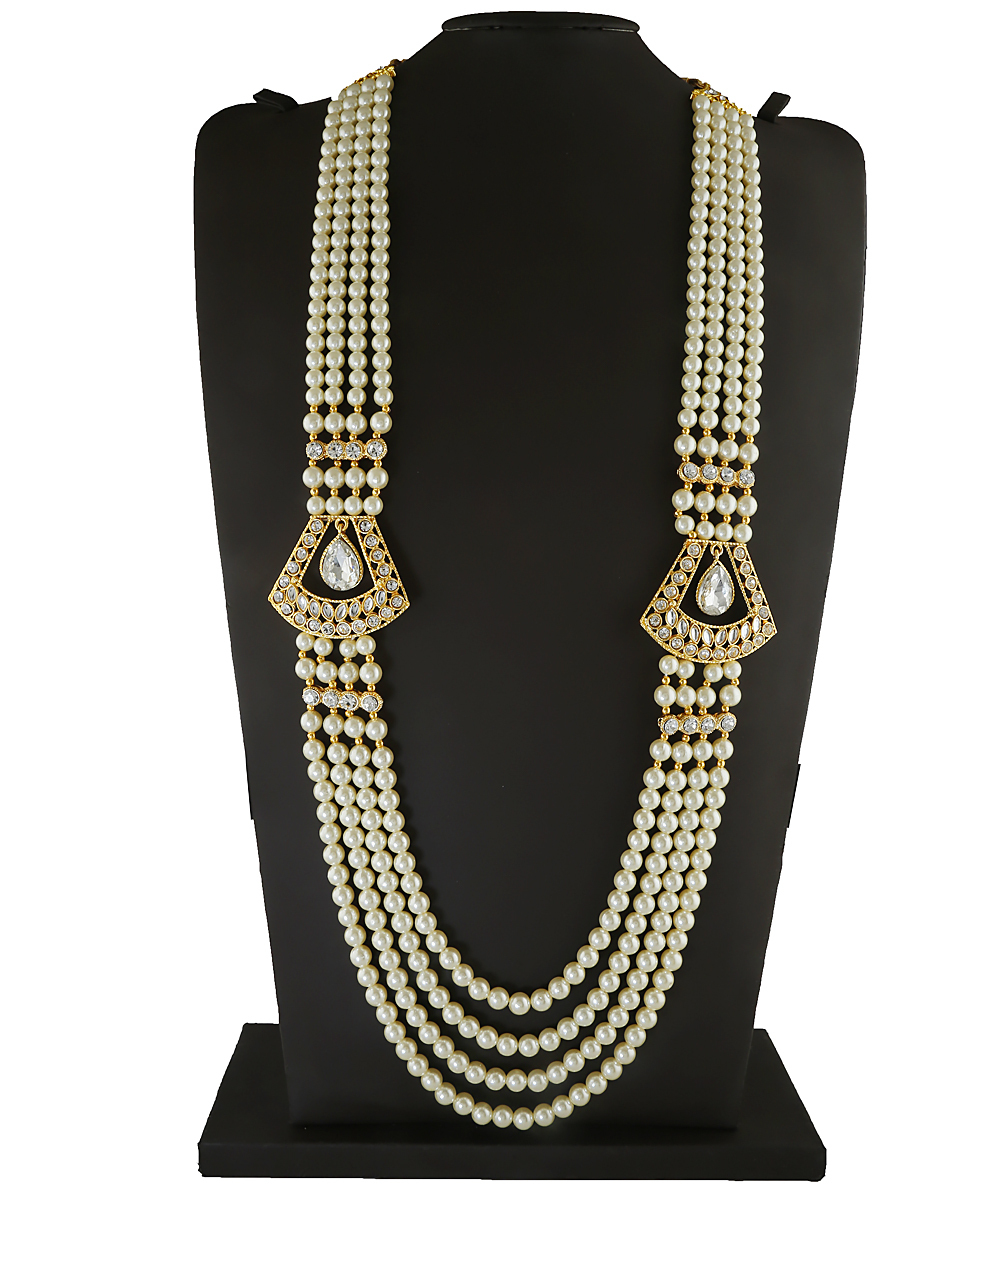 Very Classy Fancy Groom Necklace For Wedding